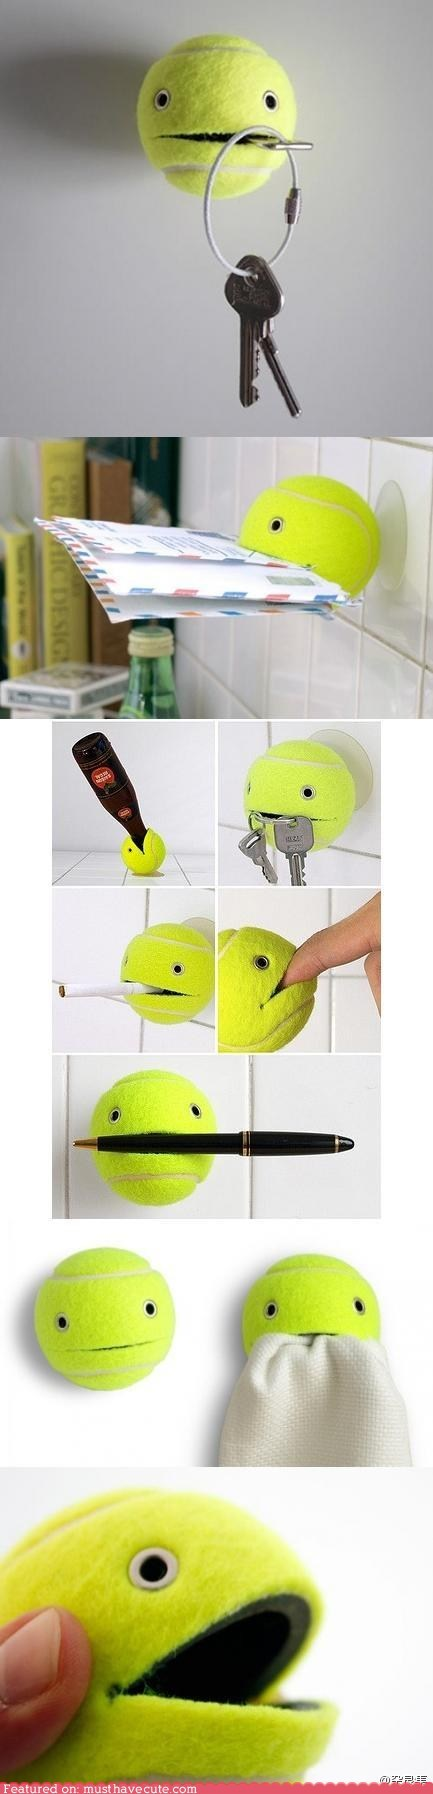 face helpful hold suction cup tennis ball - 6308073984